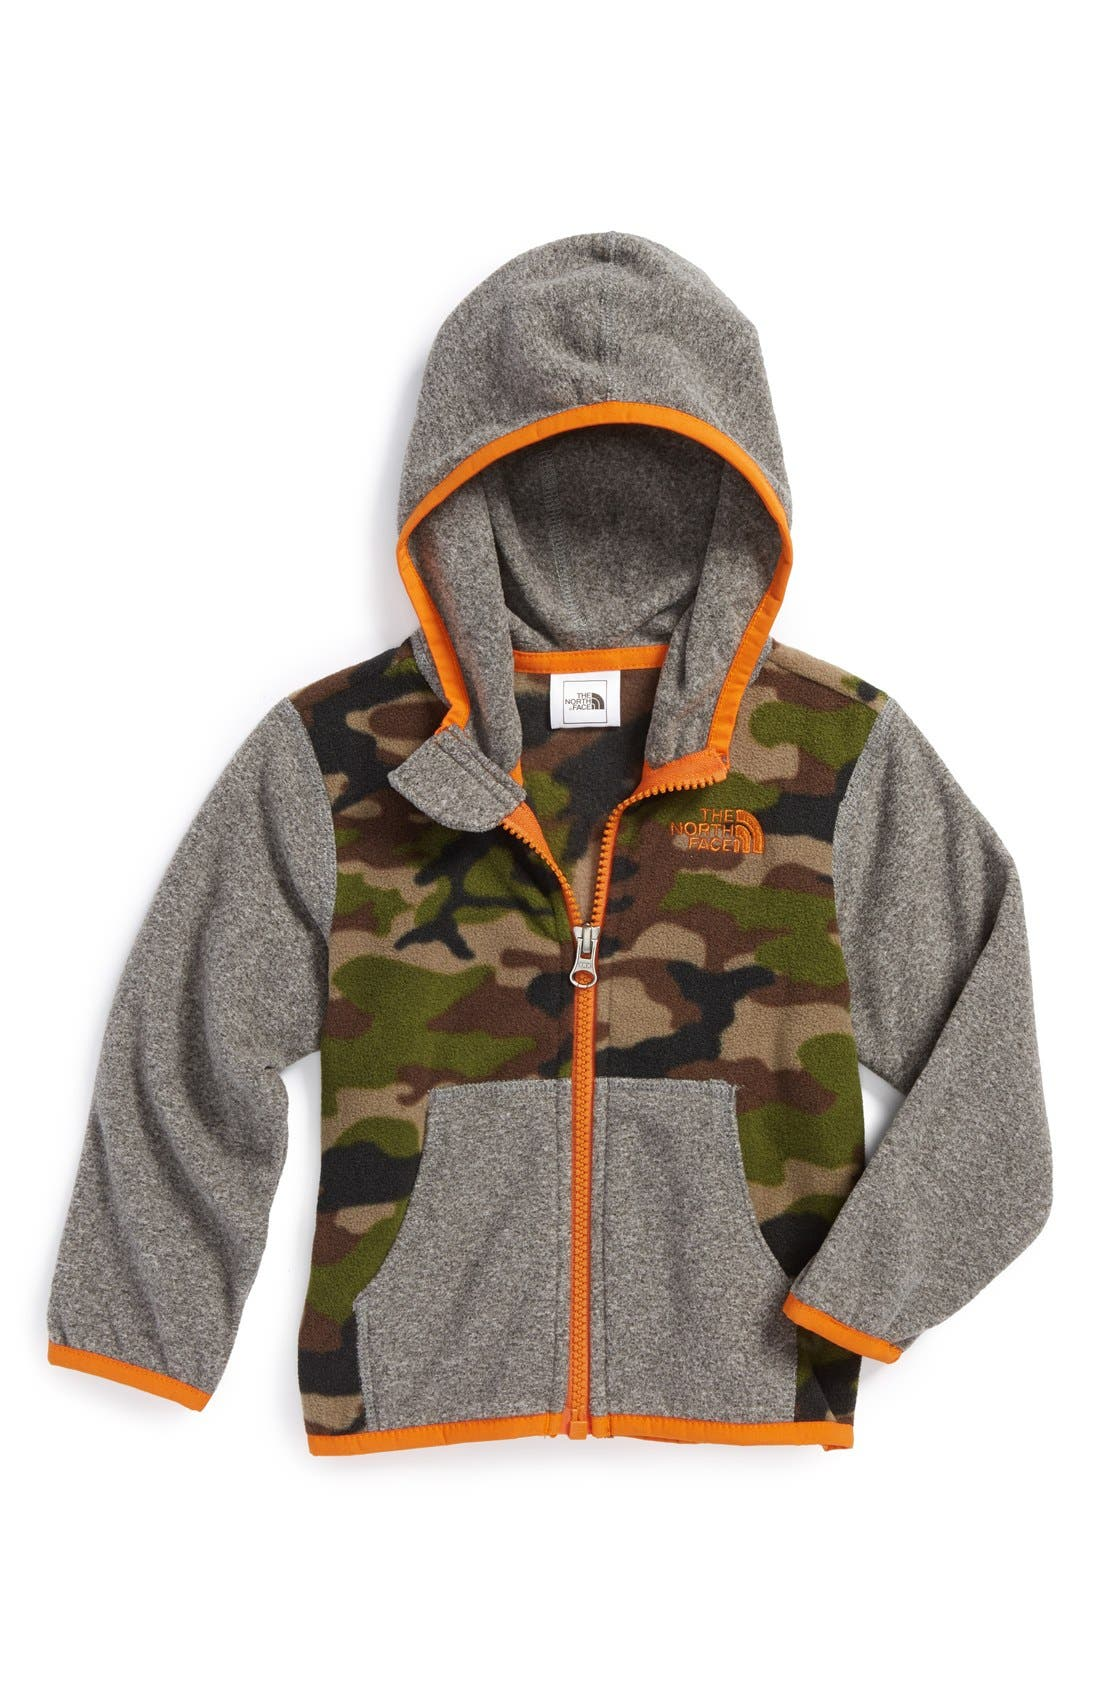 Alternate Image 1 Selected - The North Face 'Glacier' Hoodie (Baby Boys)